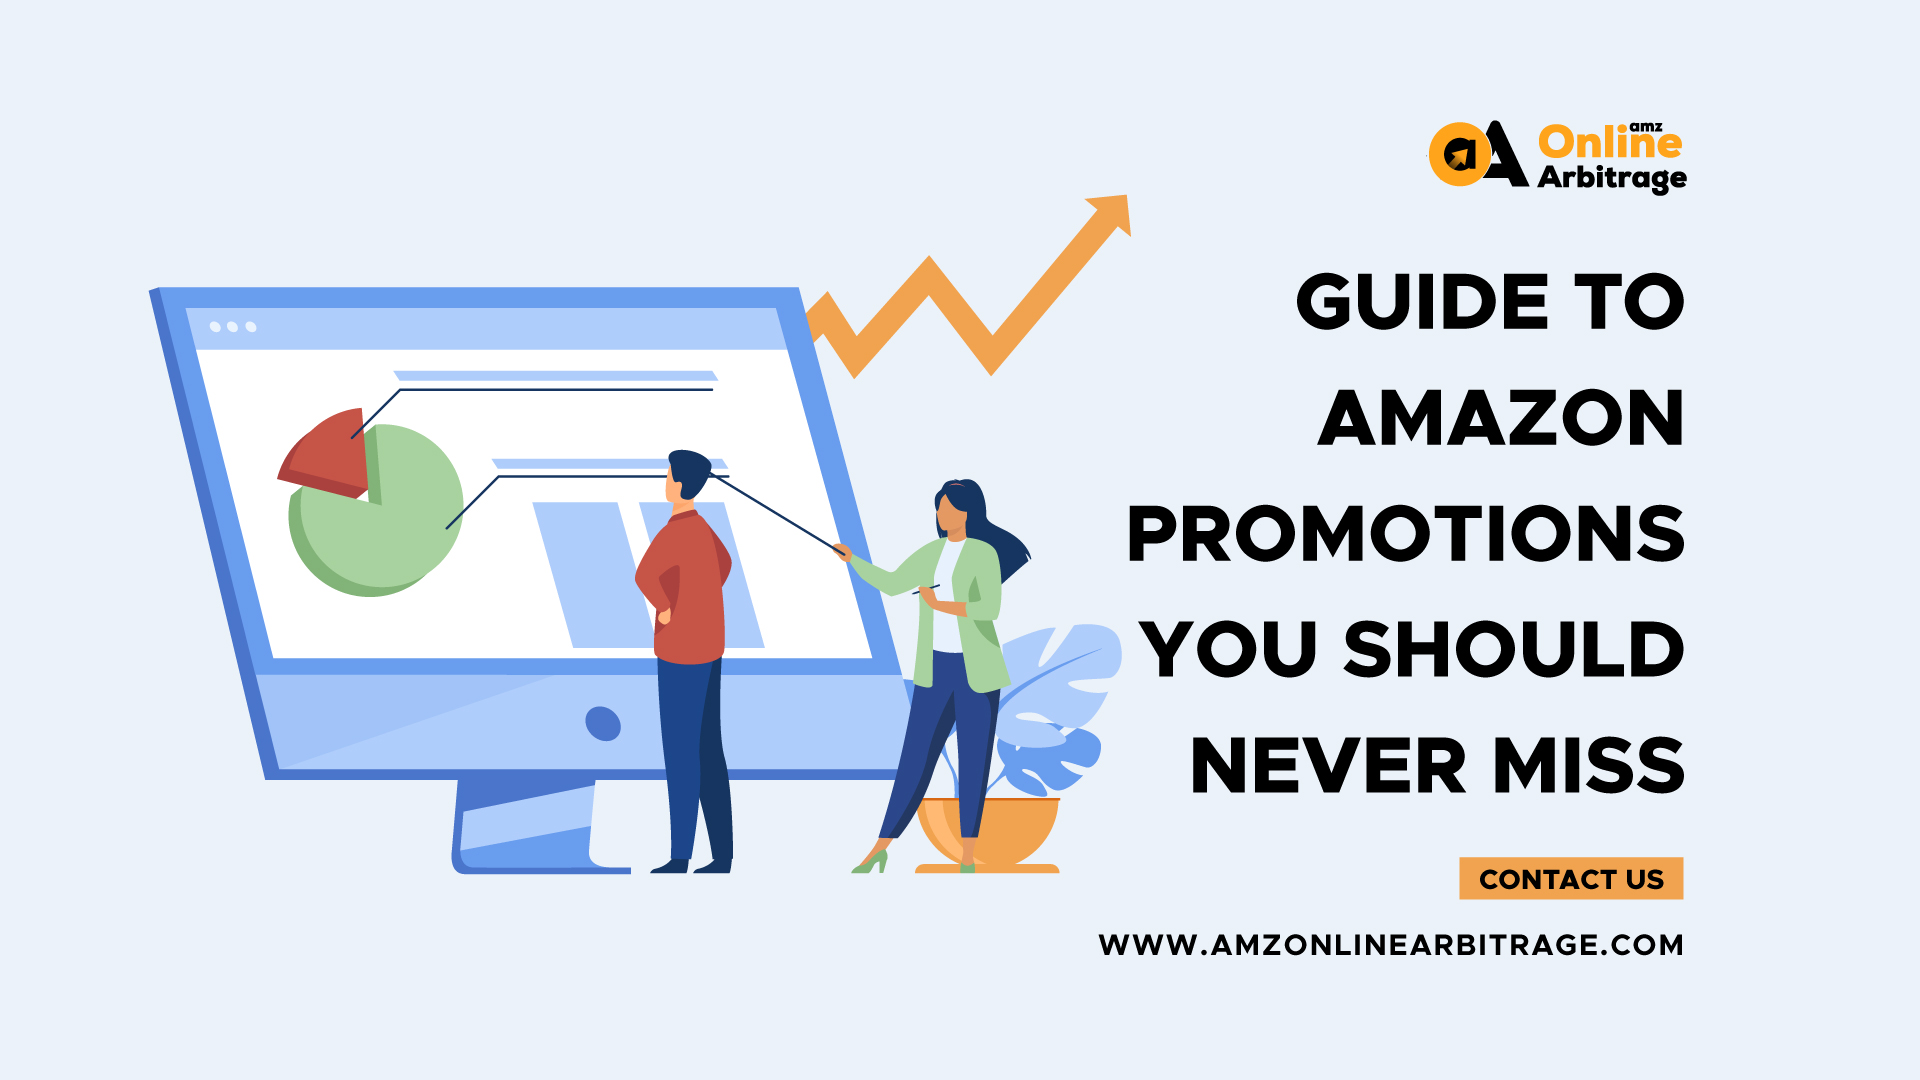 GUIDE TO AMAZON PROMOTIONS YOU SHOULD NEVER MISS